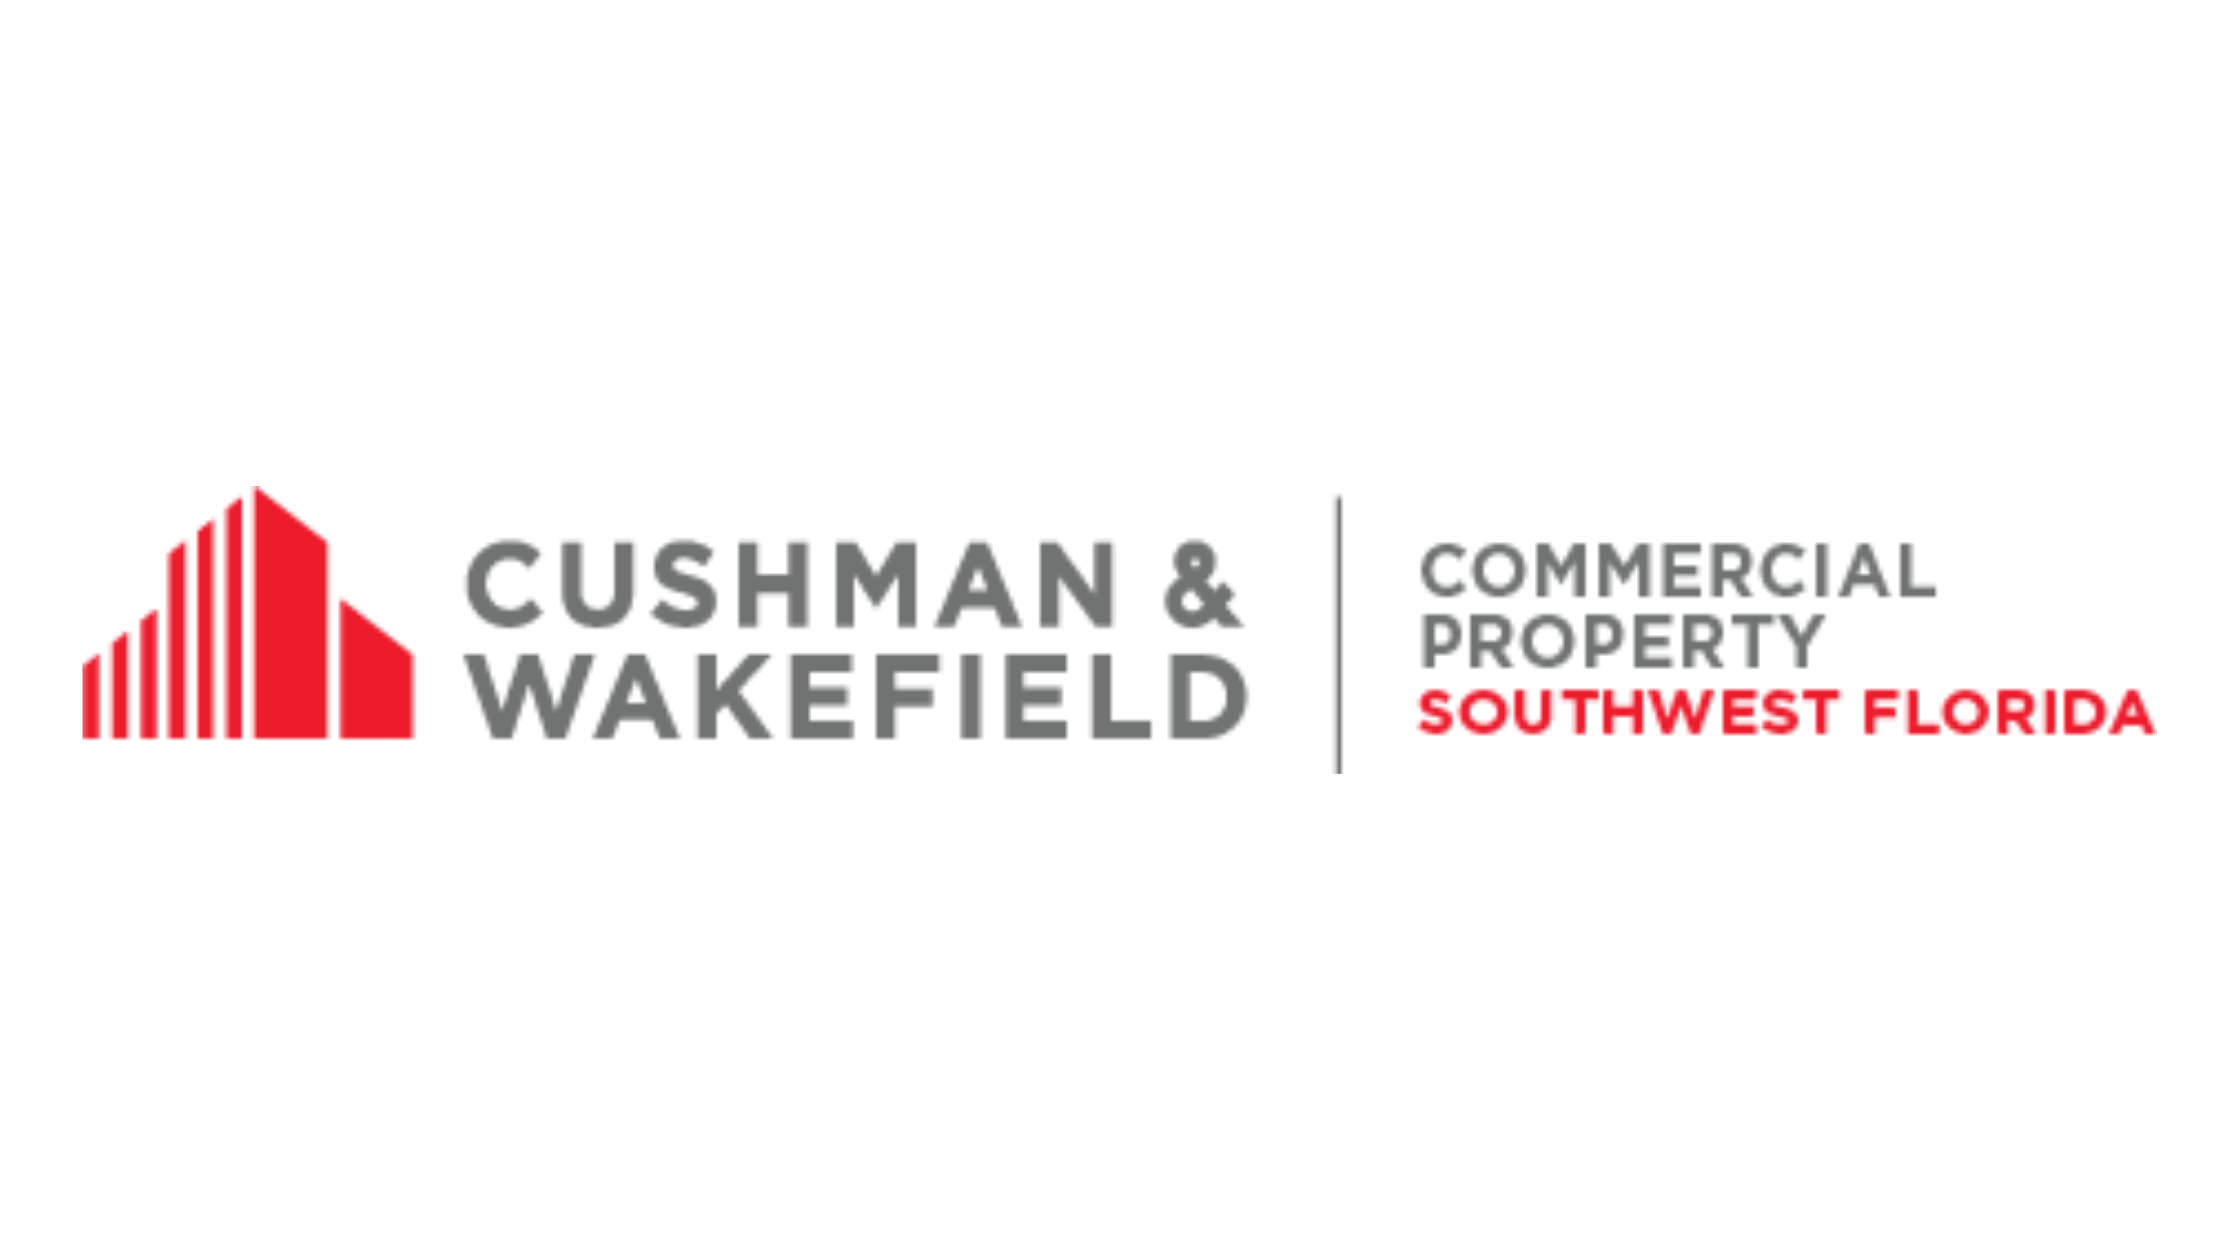 Cushman & Wakefield | Commercial Property Southwest Florida brokers $1.17 million sale of Fort Myers property